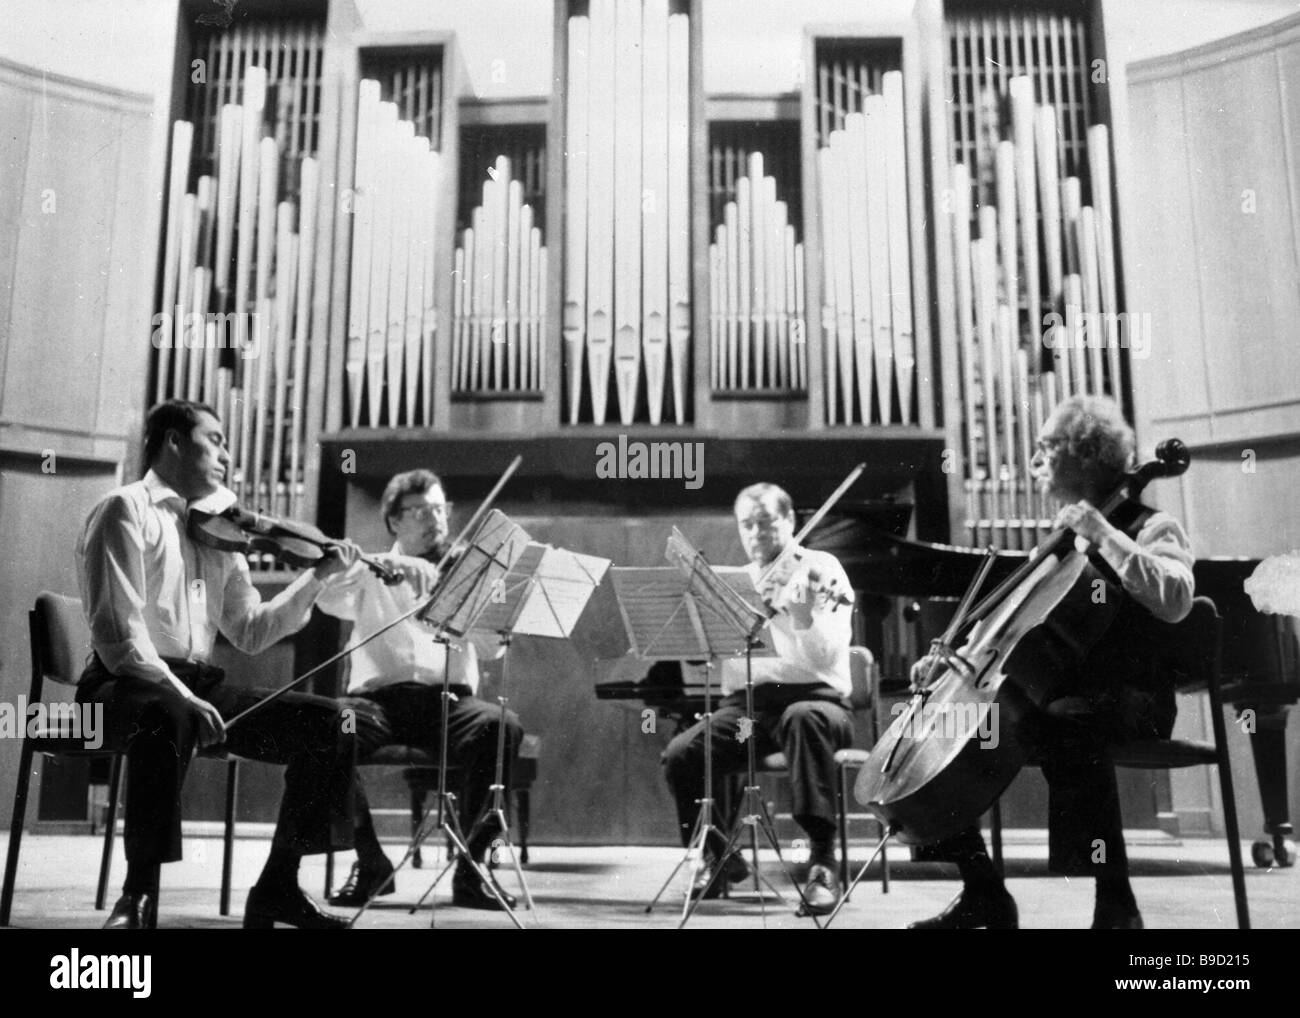 Alexander Borodin stringed quartet performing at the Moscow conservatory - Stock Image